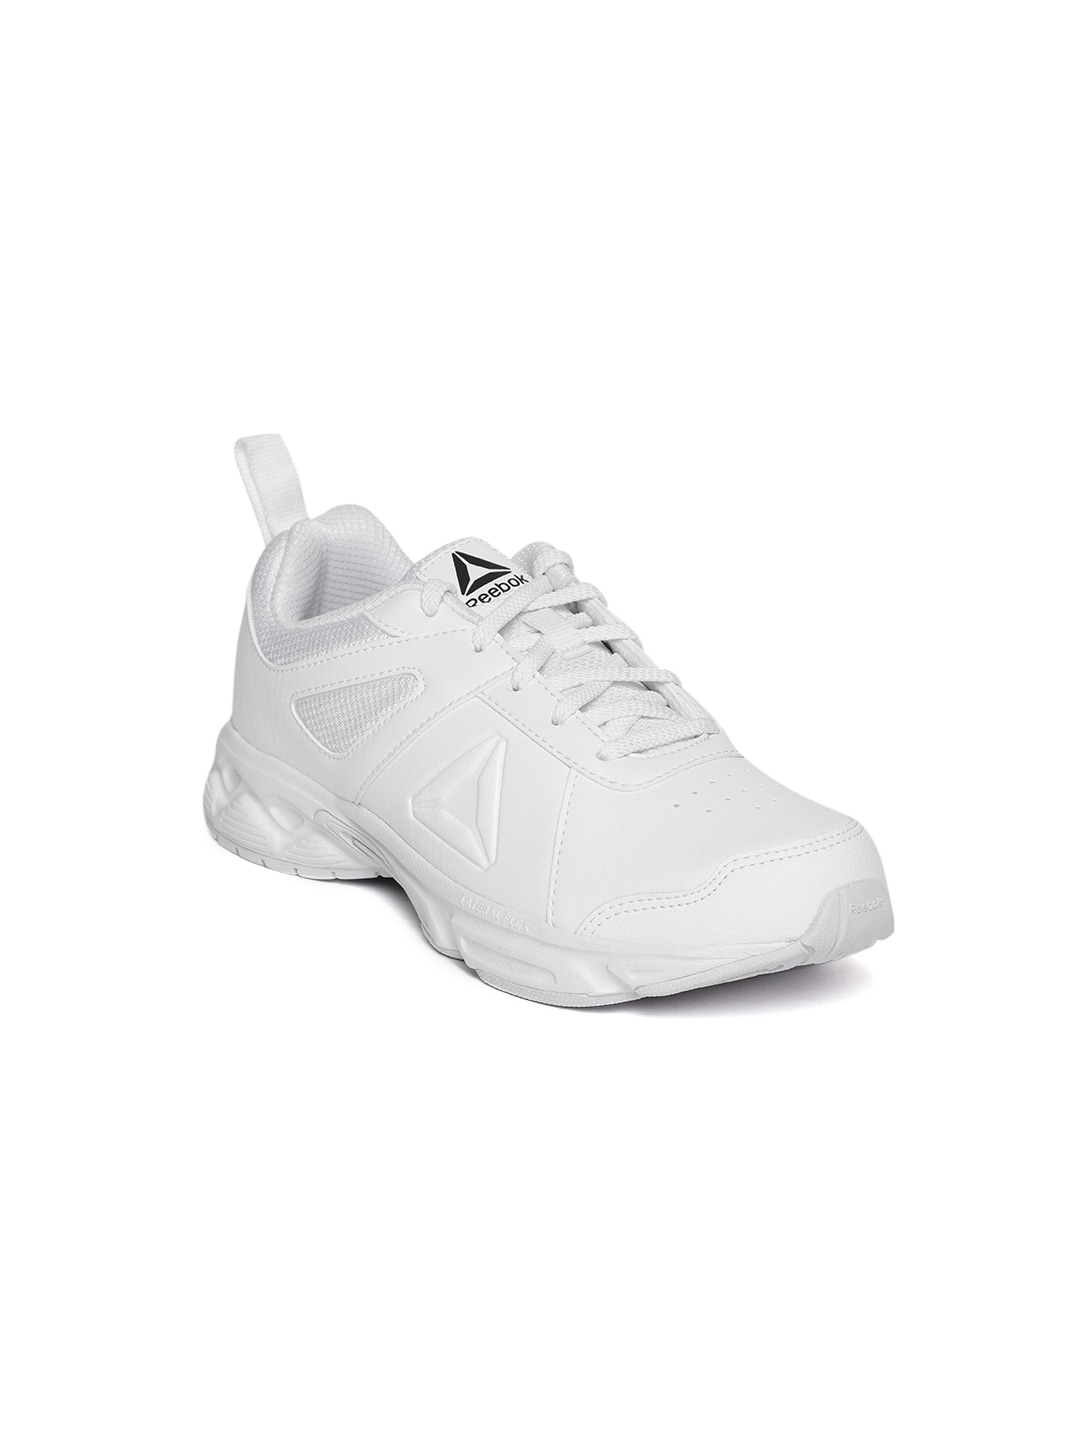 fbef3c461d4 Reebok Sports Footwear - Buy Reebok Sports Footwear Online in India